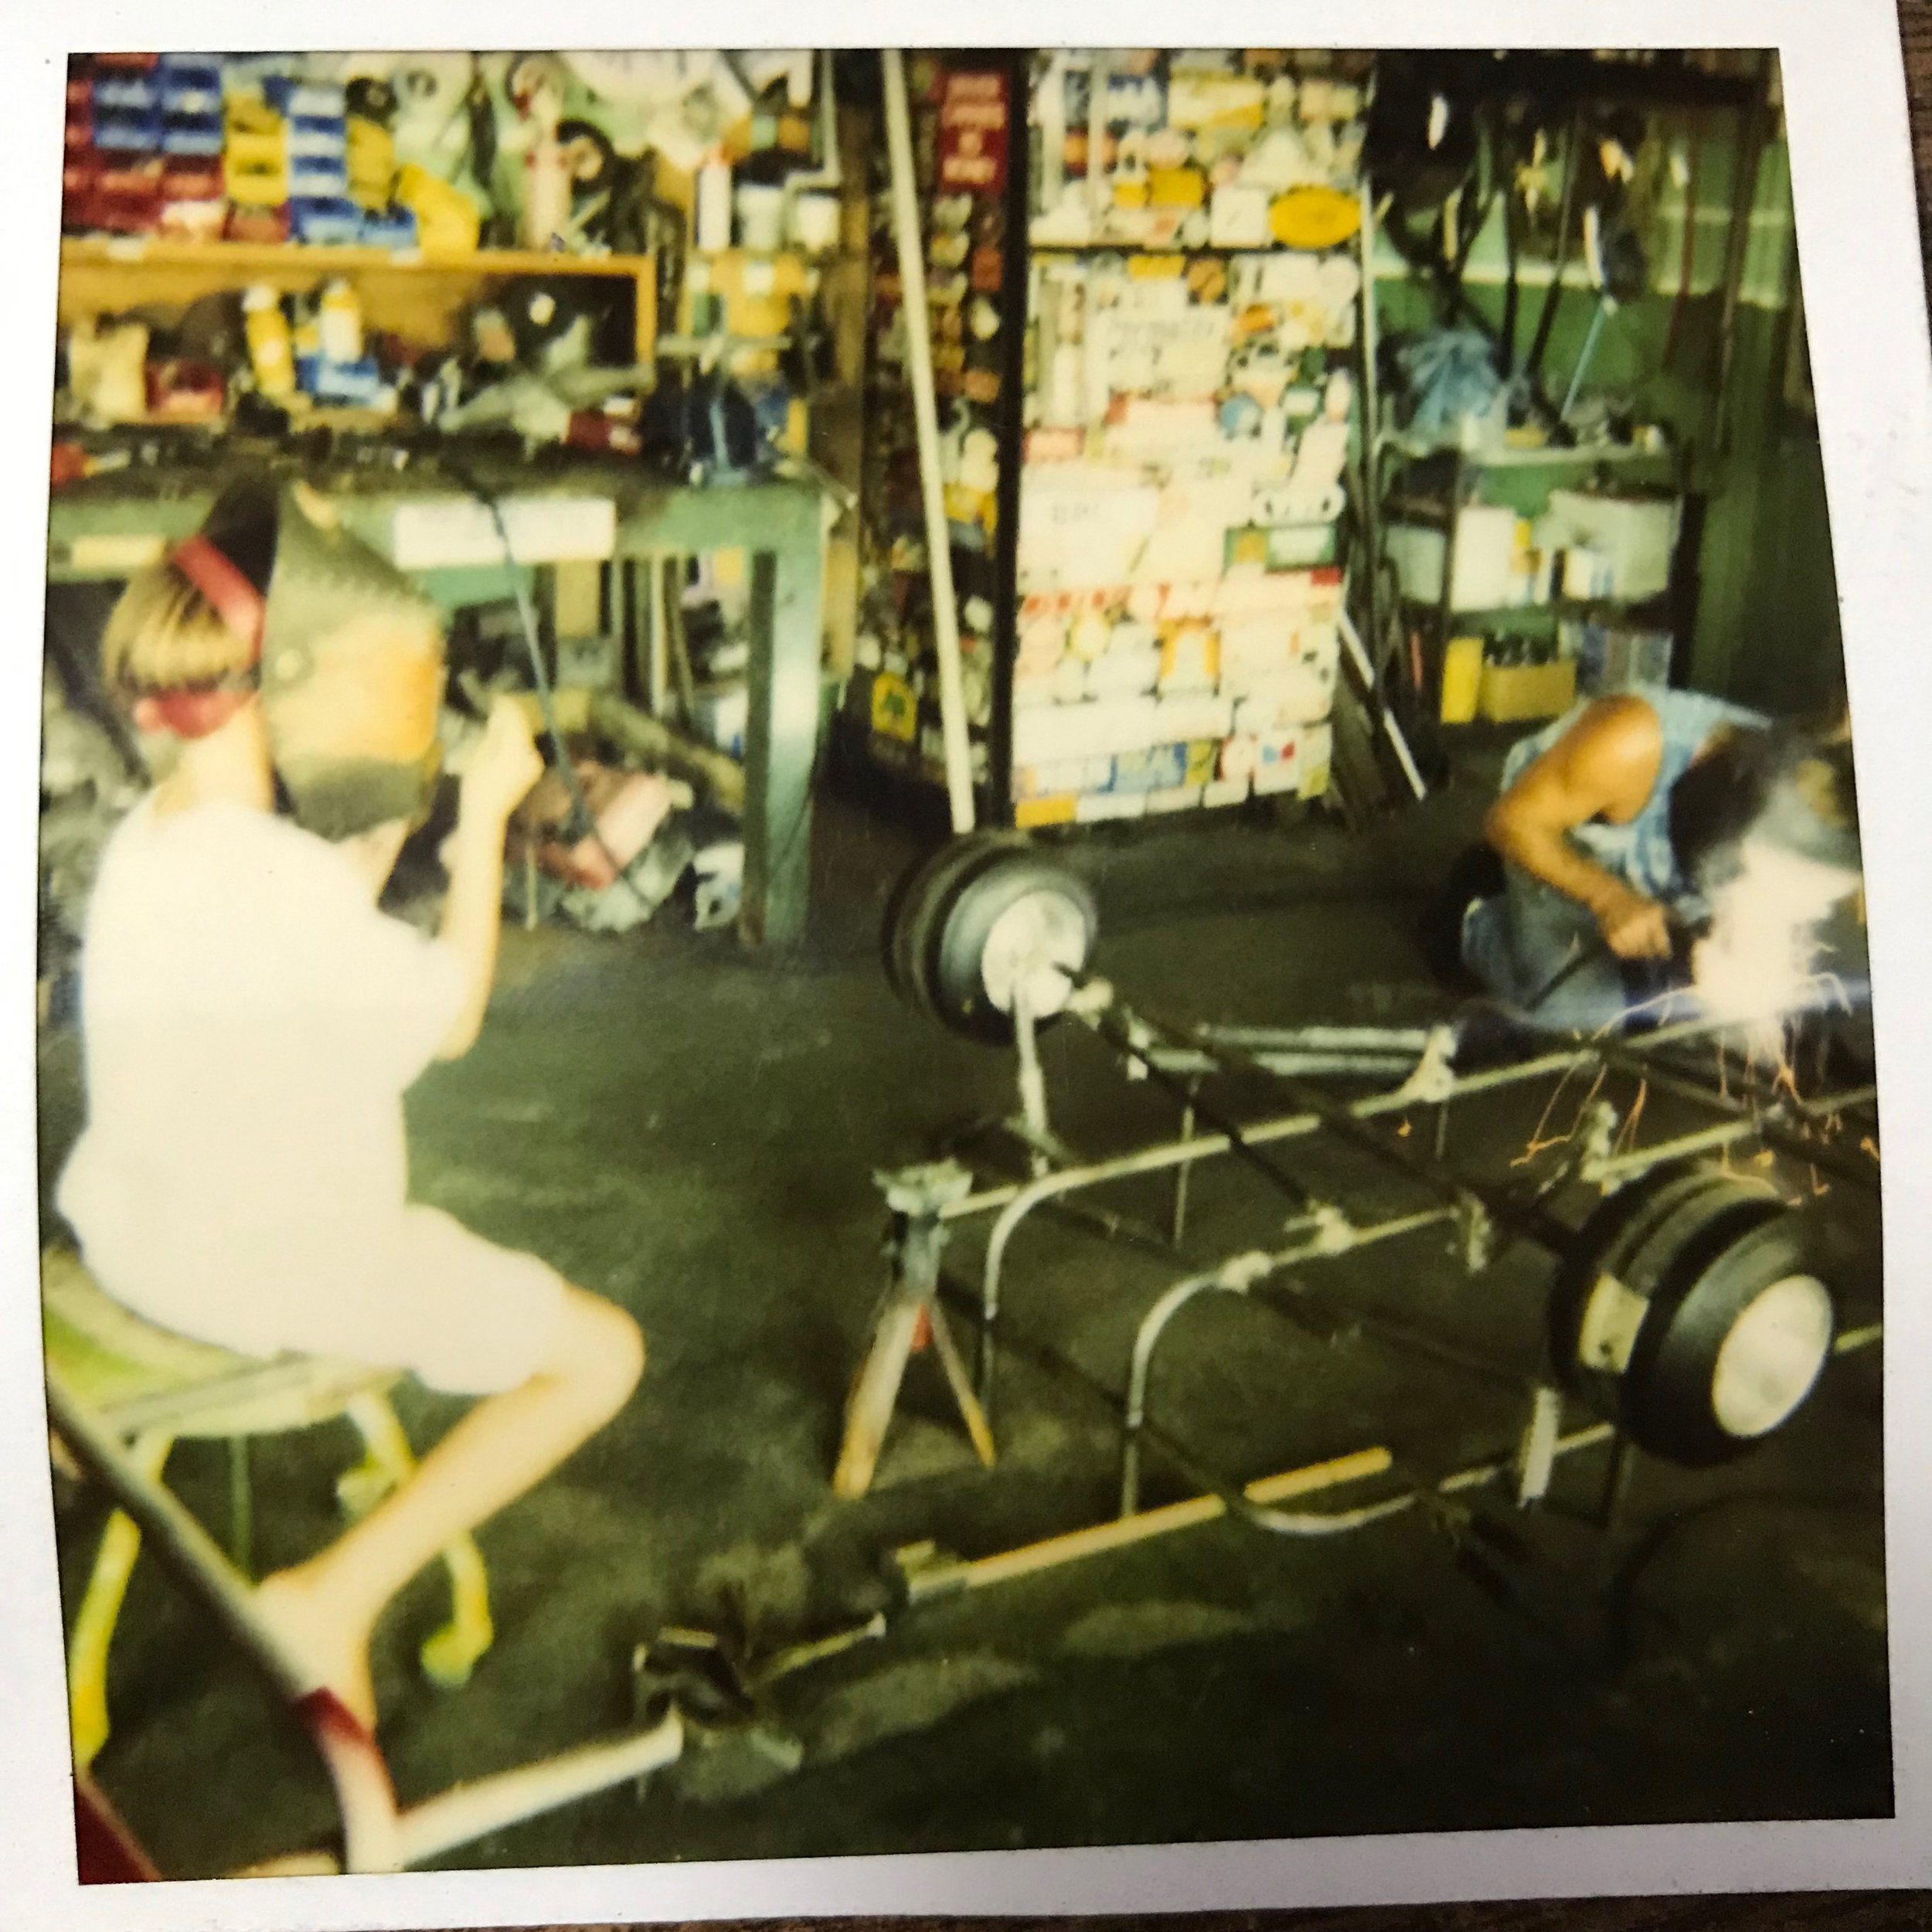 Shawn and his bro building a minitrailer for owner of Lghtning Magazine in Japan to pull behind his moped